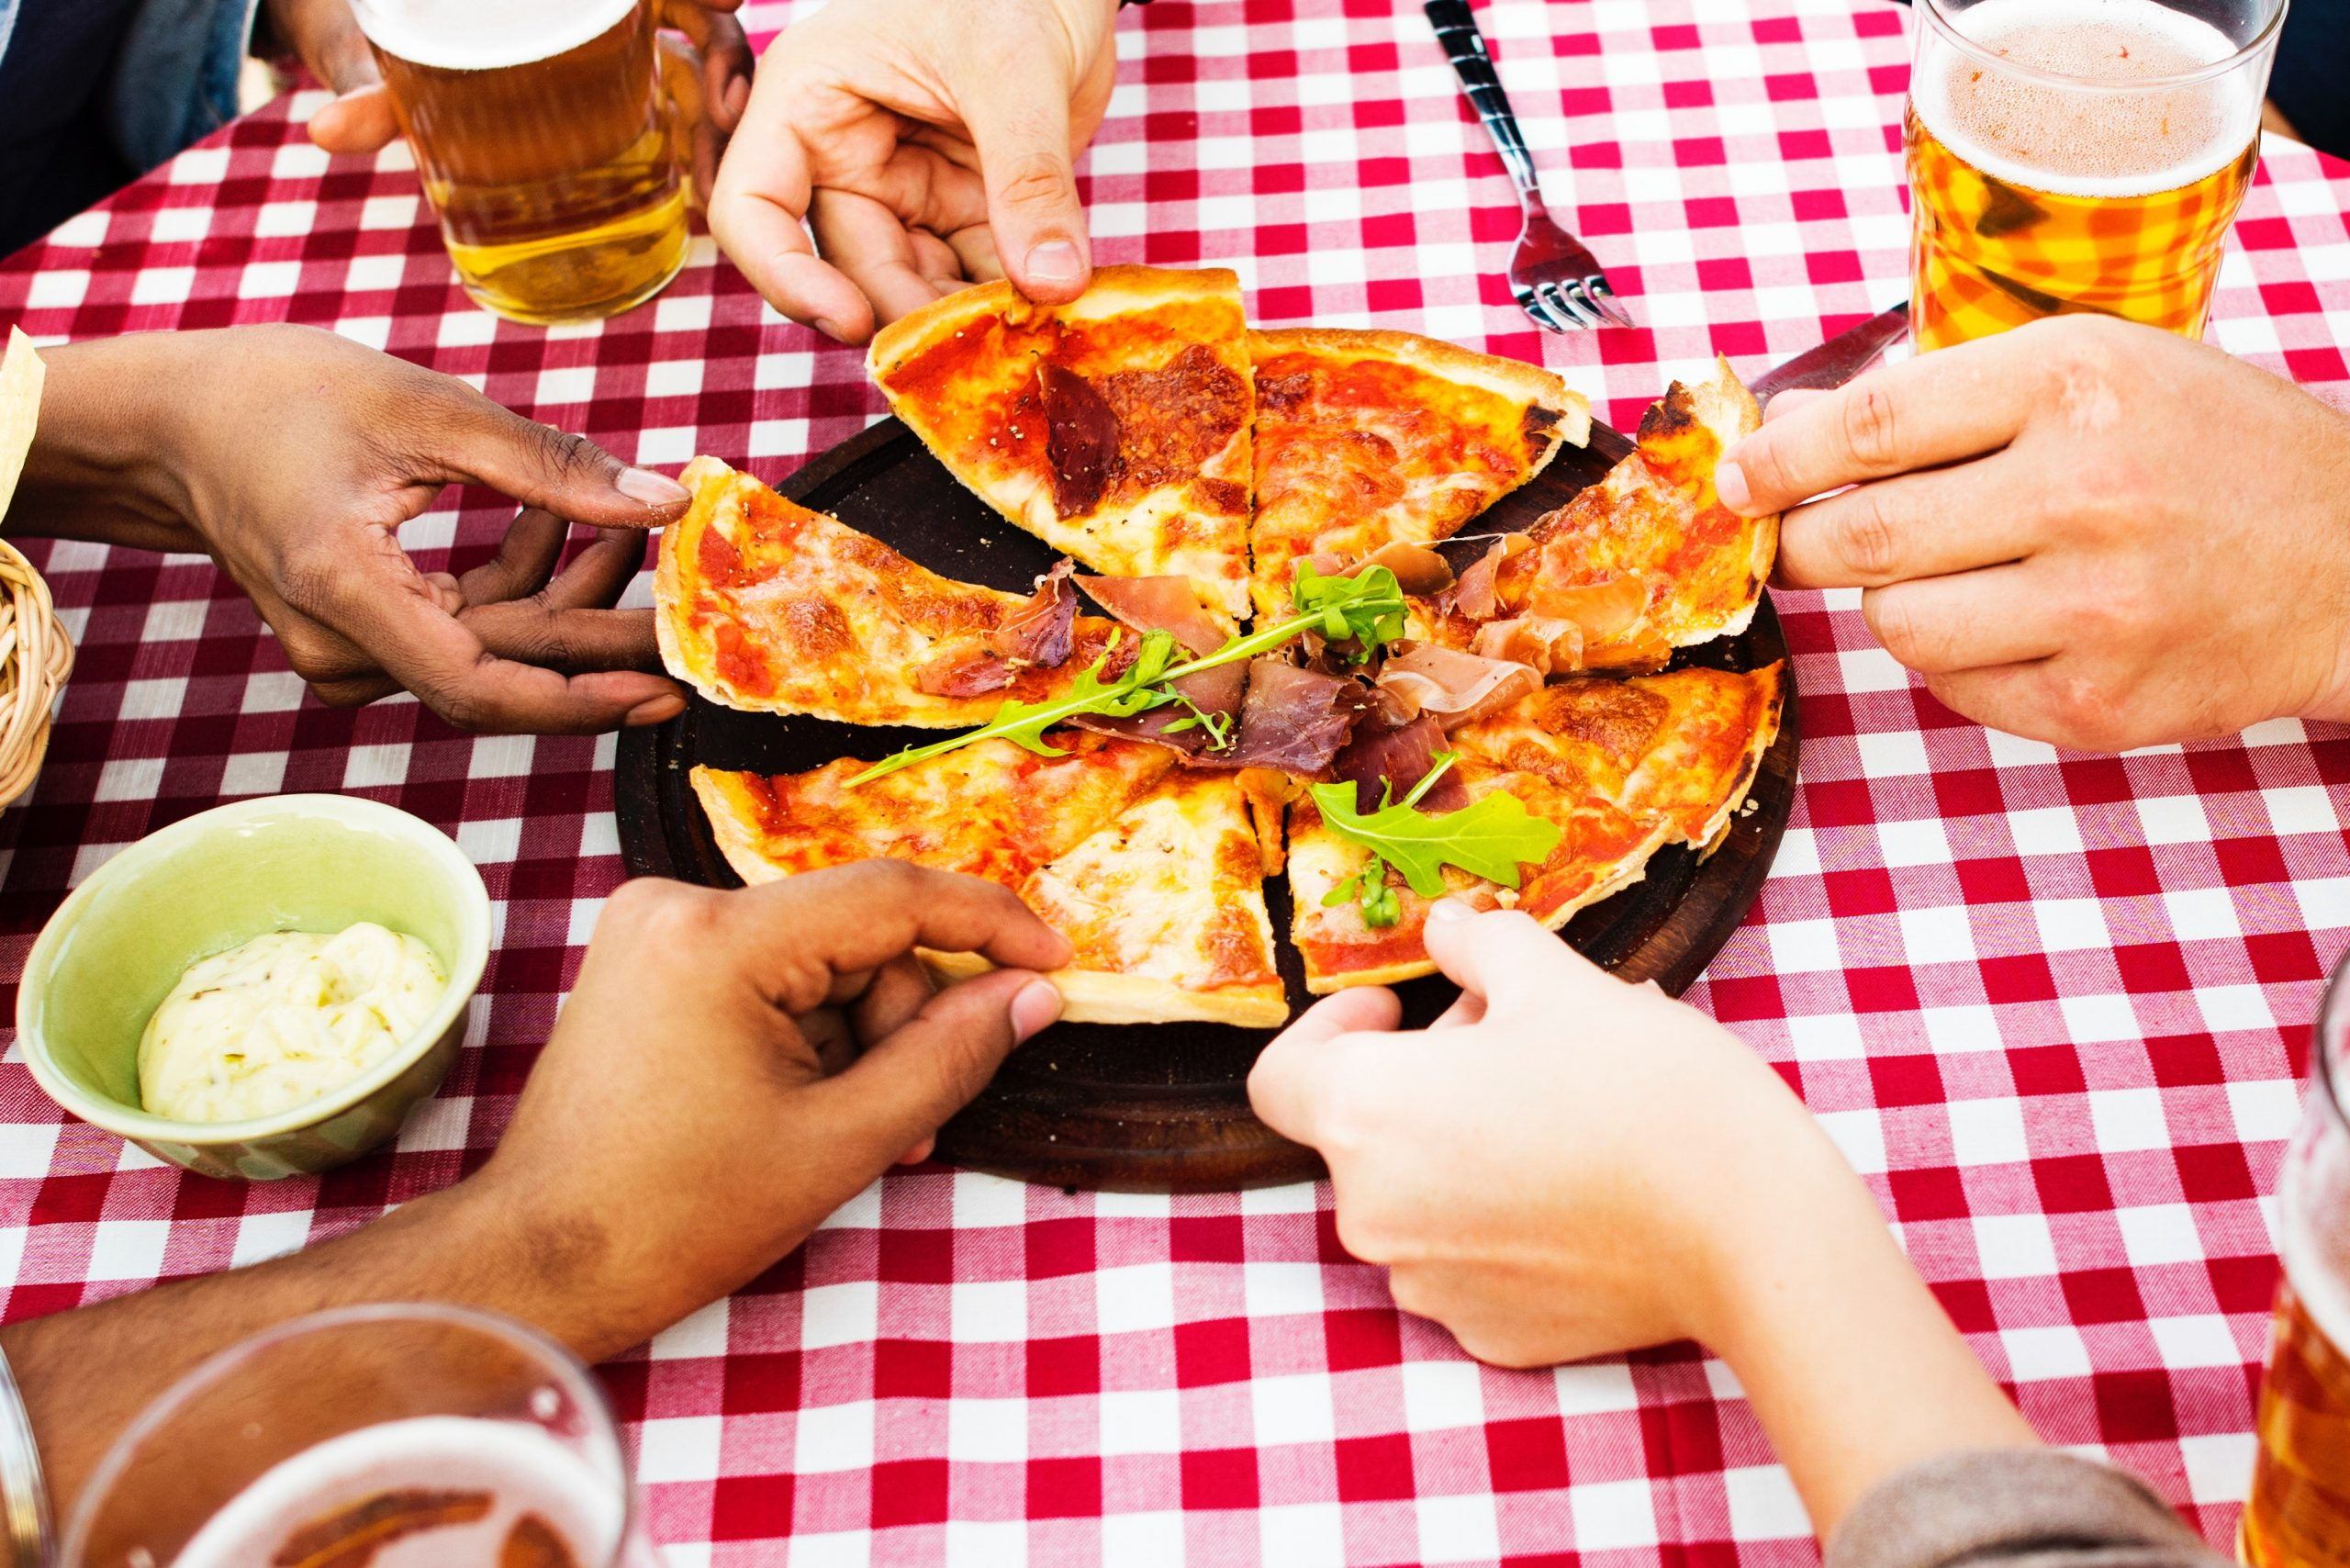 friends enjoying pizza and beers